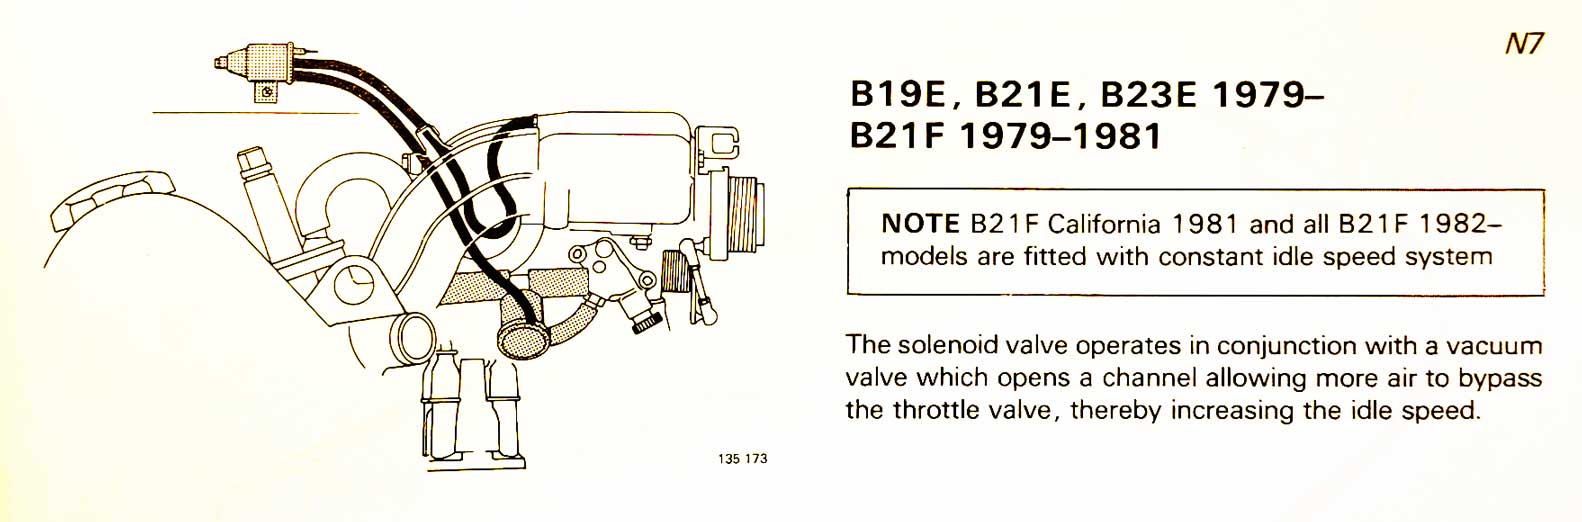 hight resolution of 240 b21e f 1979 82 ac idle compensation